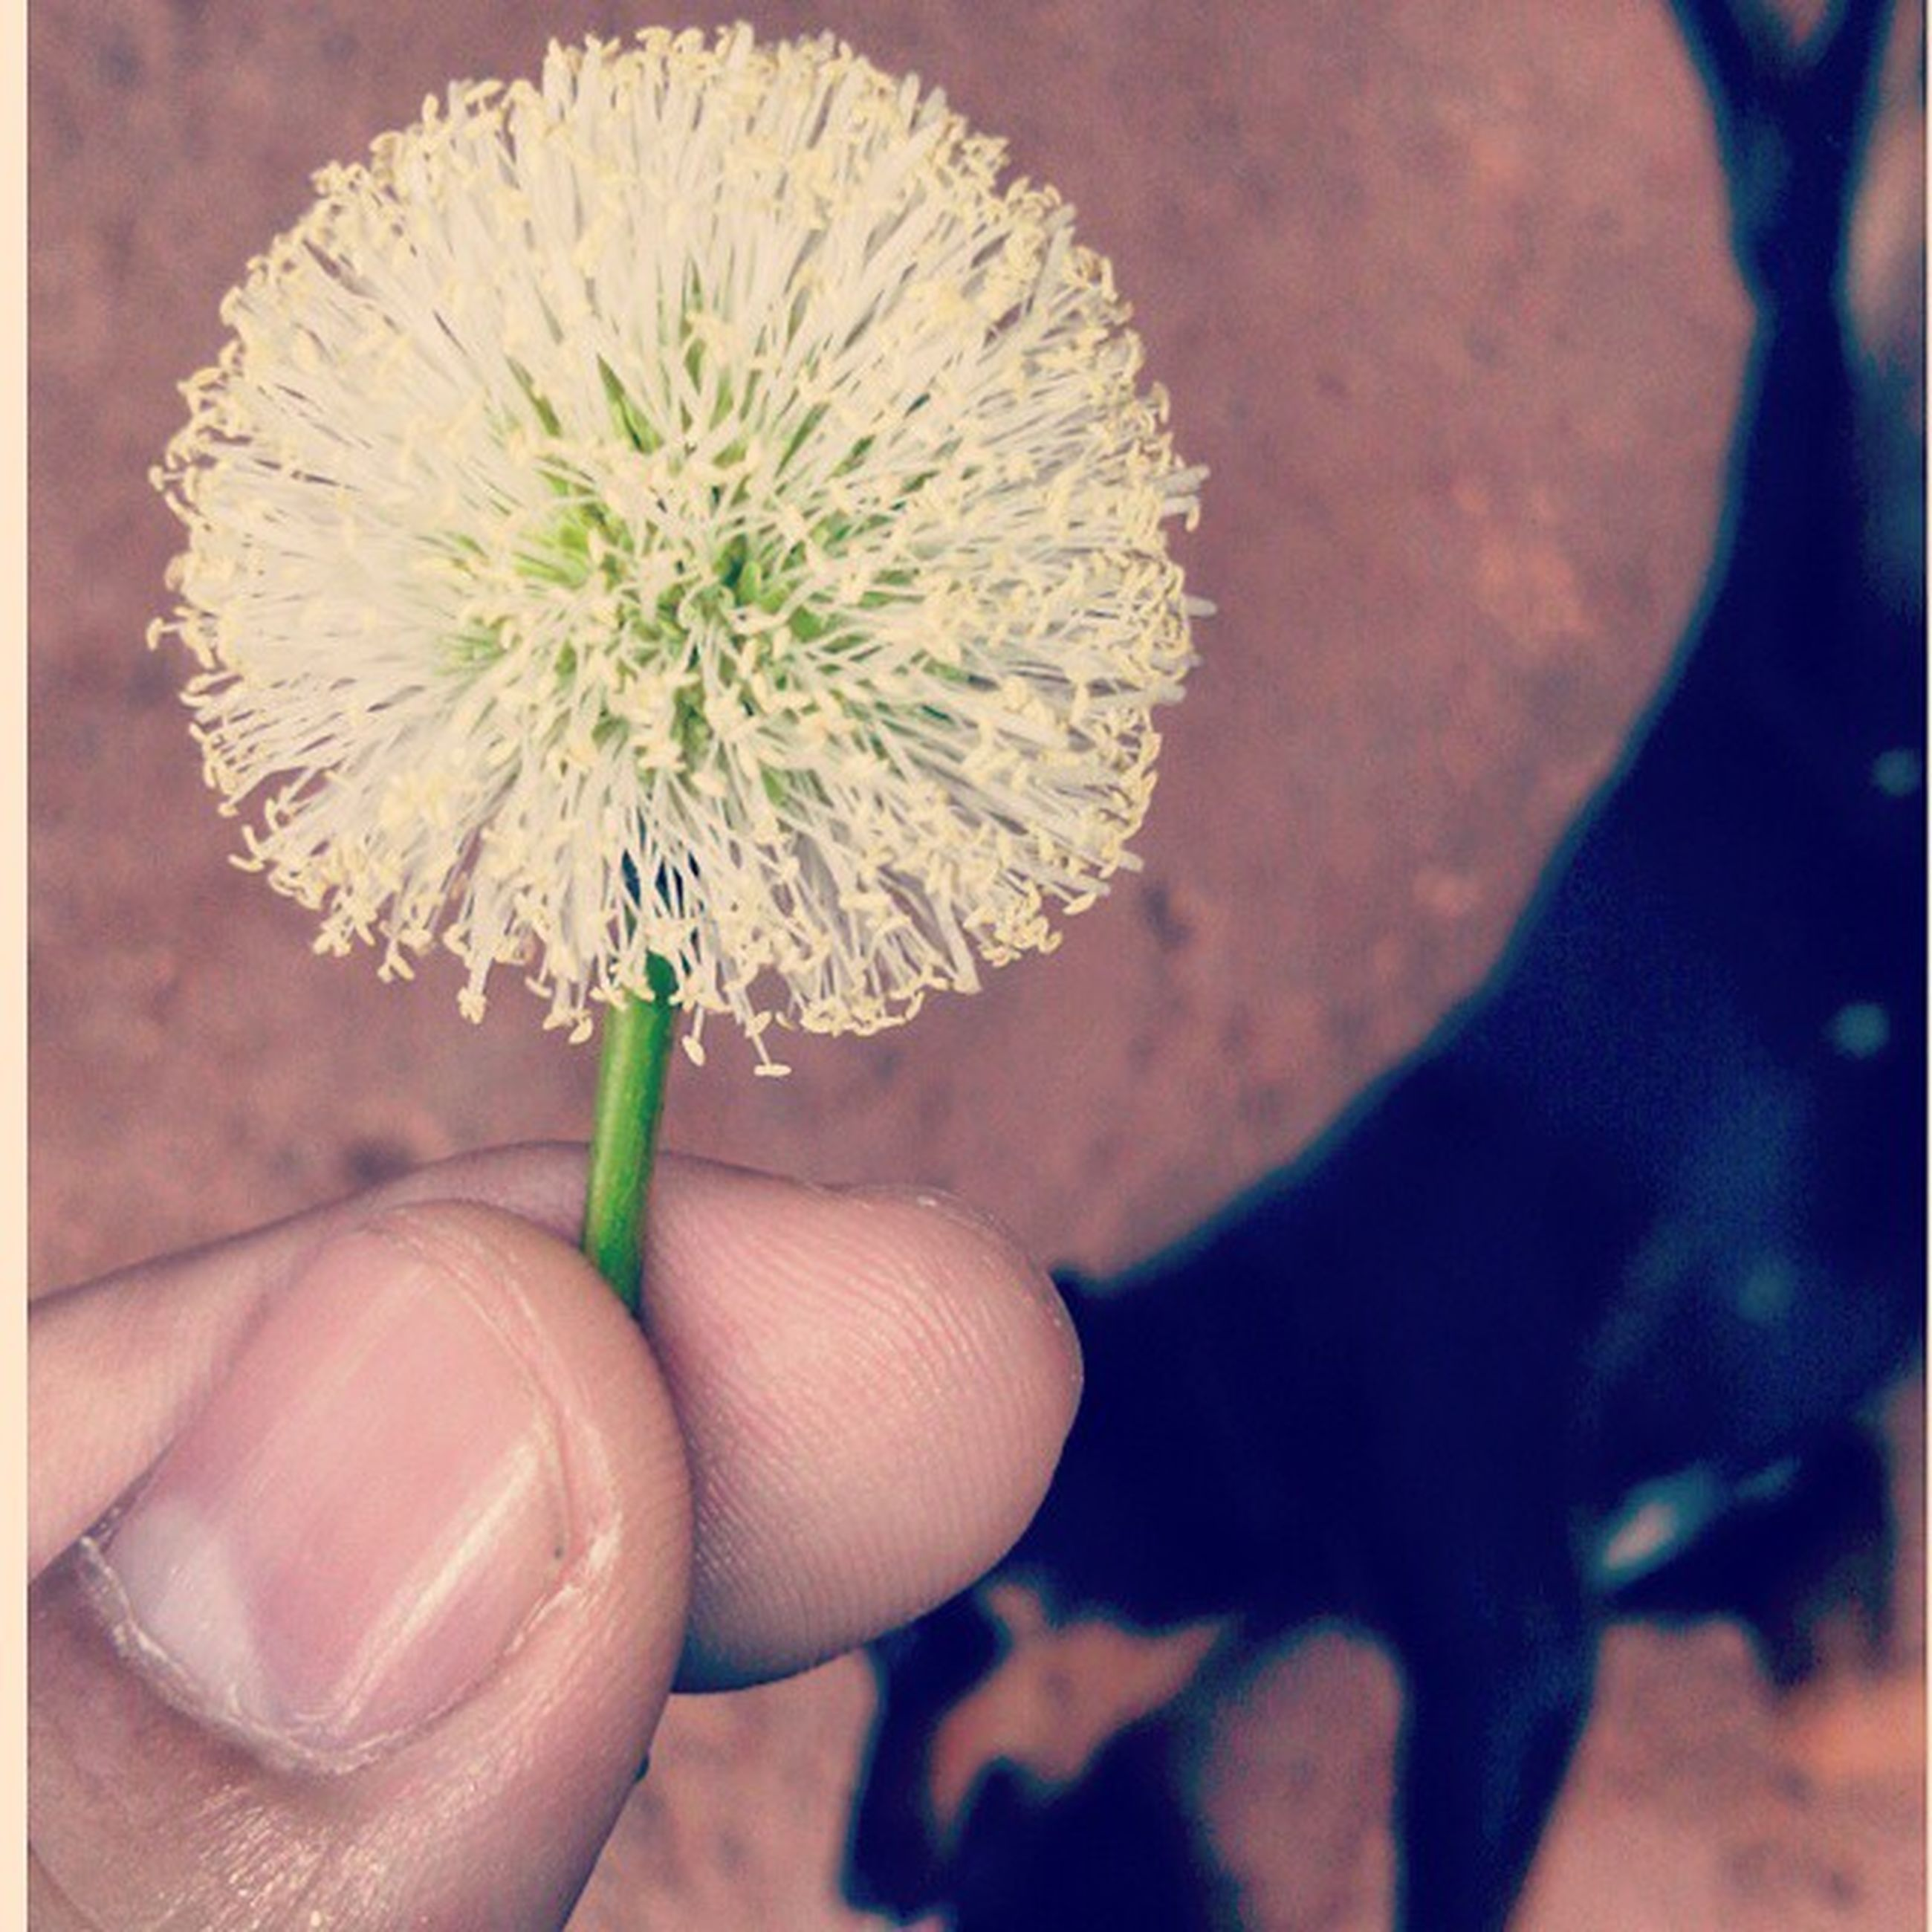 flower, holding, person, close-up, fragility, focus on foreground, flower head, freshness, part of, cropped, human finger, white color, petal, dandelion, growth, single flower, plant